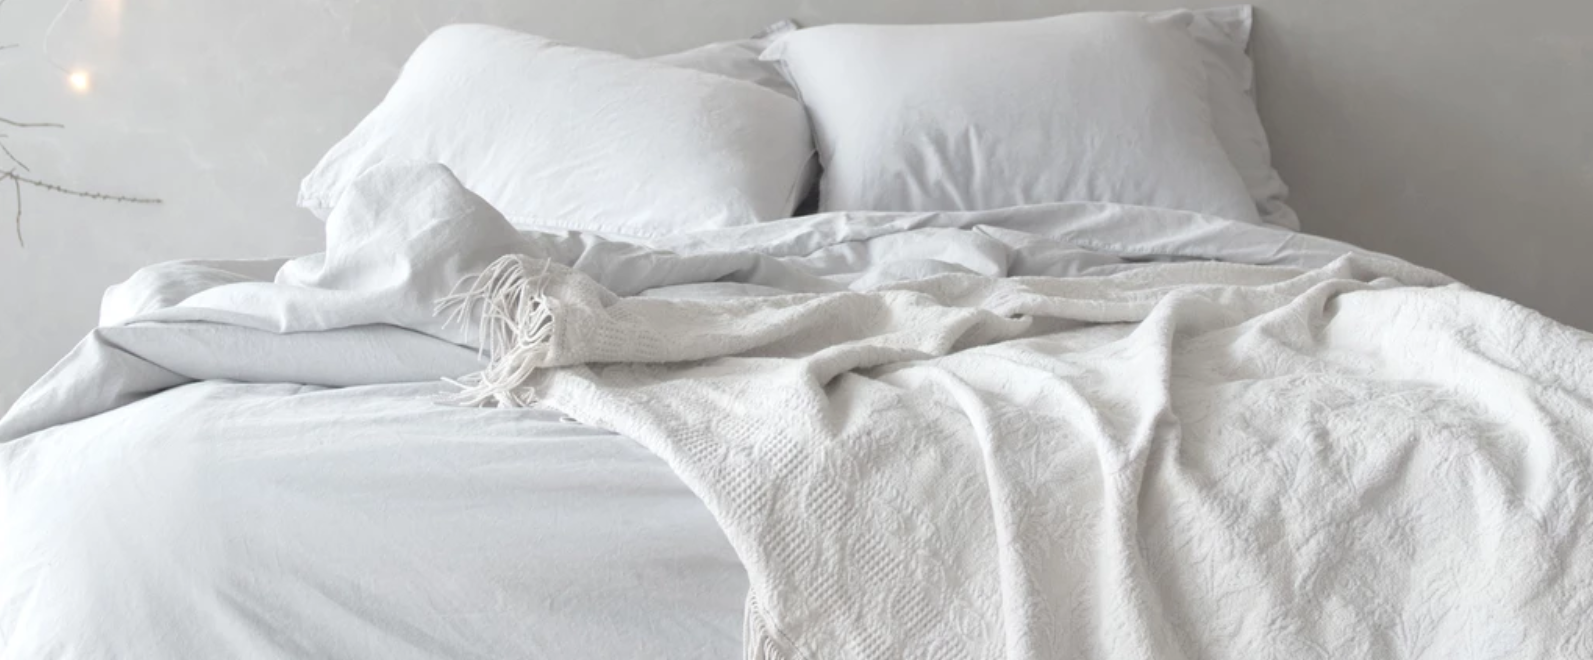 how often should i wash and change my sheets